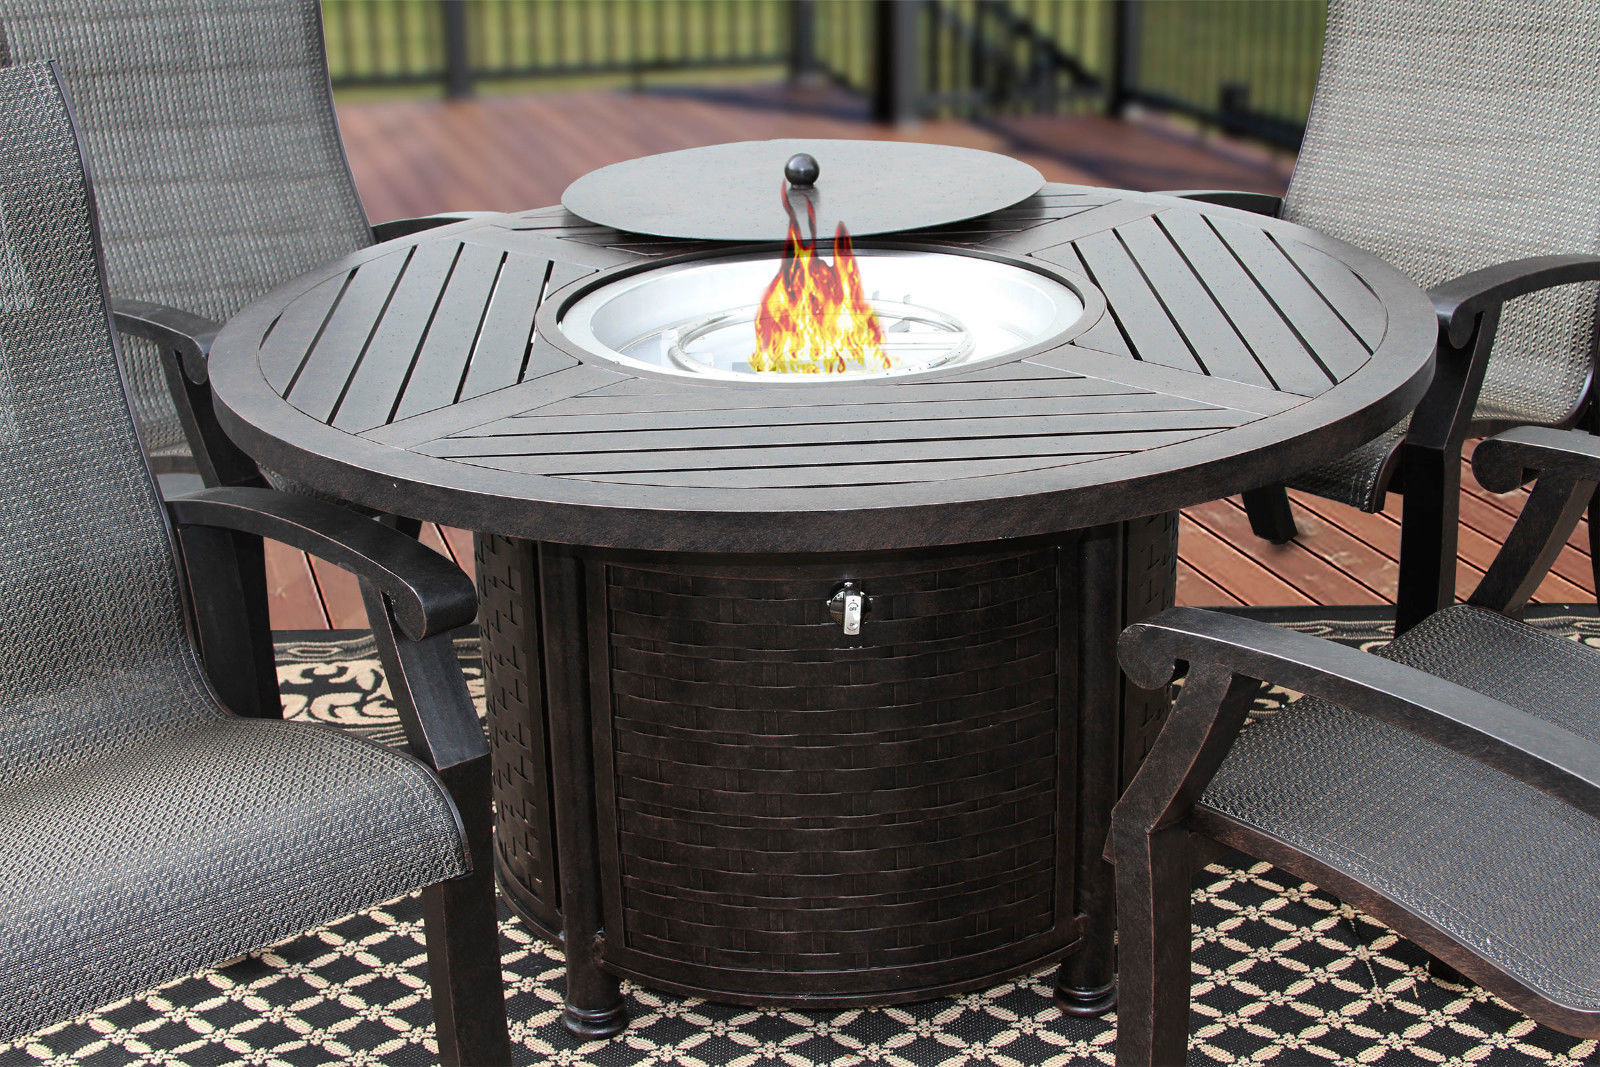 5 Piece FIRE TABLE BARBADOS SLING OUTDOOR PATIO FURNITURE DINING SET FIRE PIT image 2